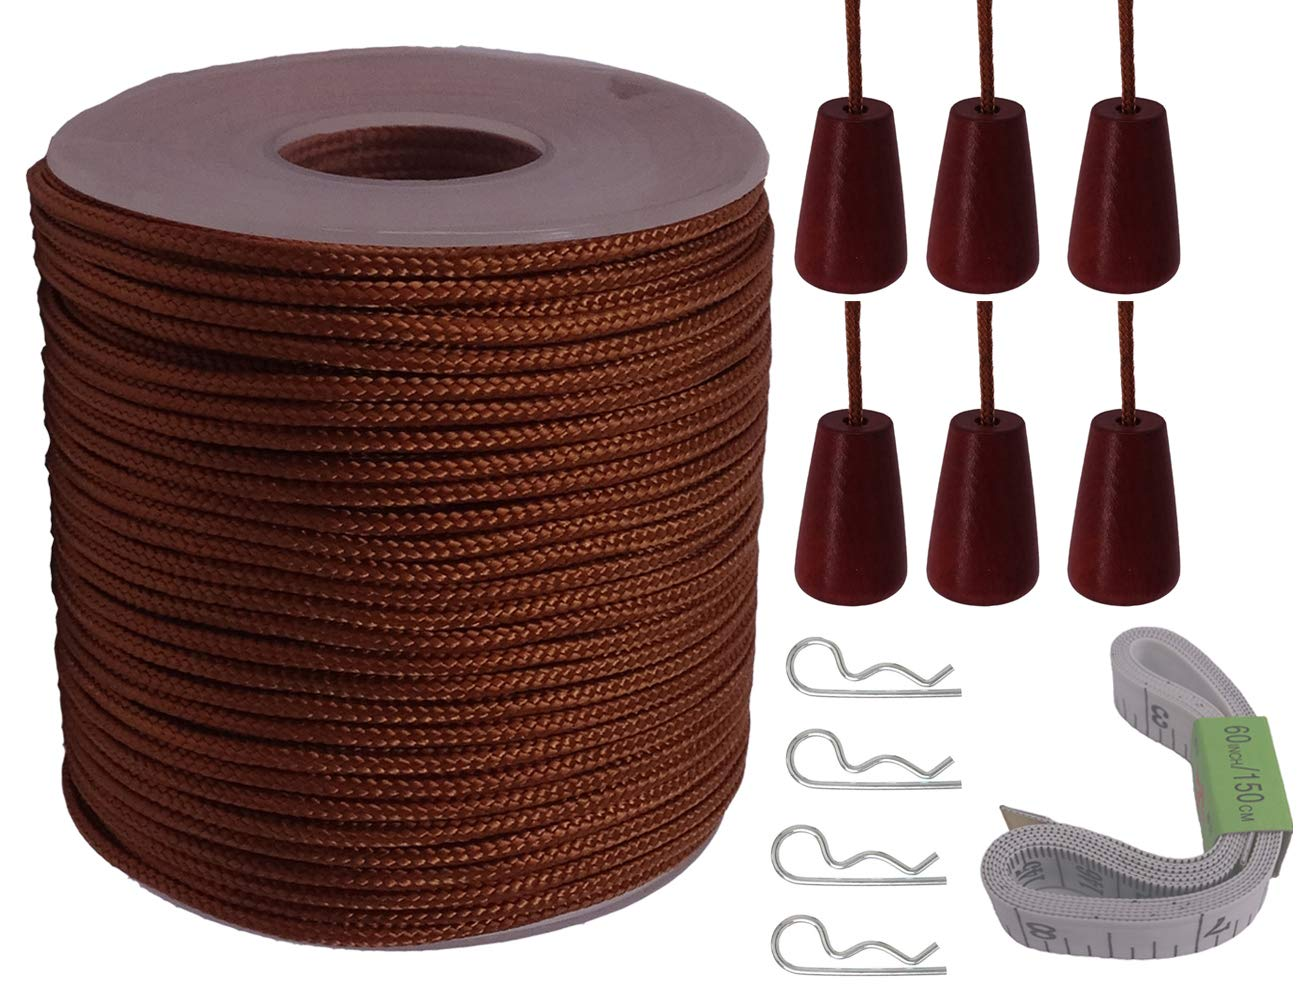 Y-Axis Roll of 60 Yards 2.0mm Brown Braided Nylon Lift Shade Cord with 6 Pack Brown Wood Cord Knobs + Soft Tape